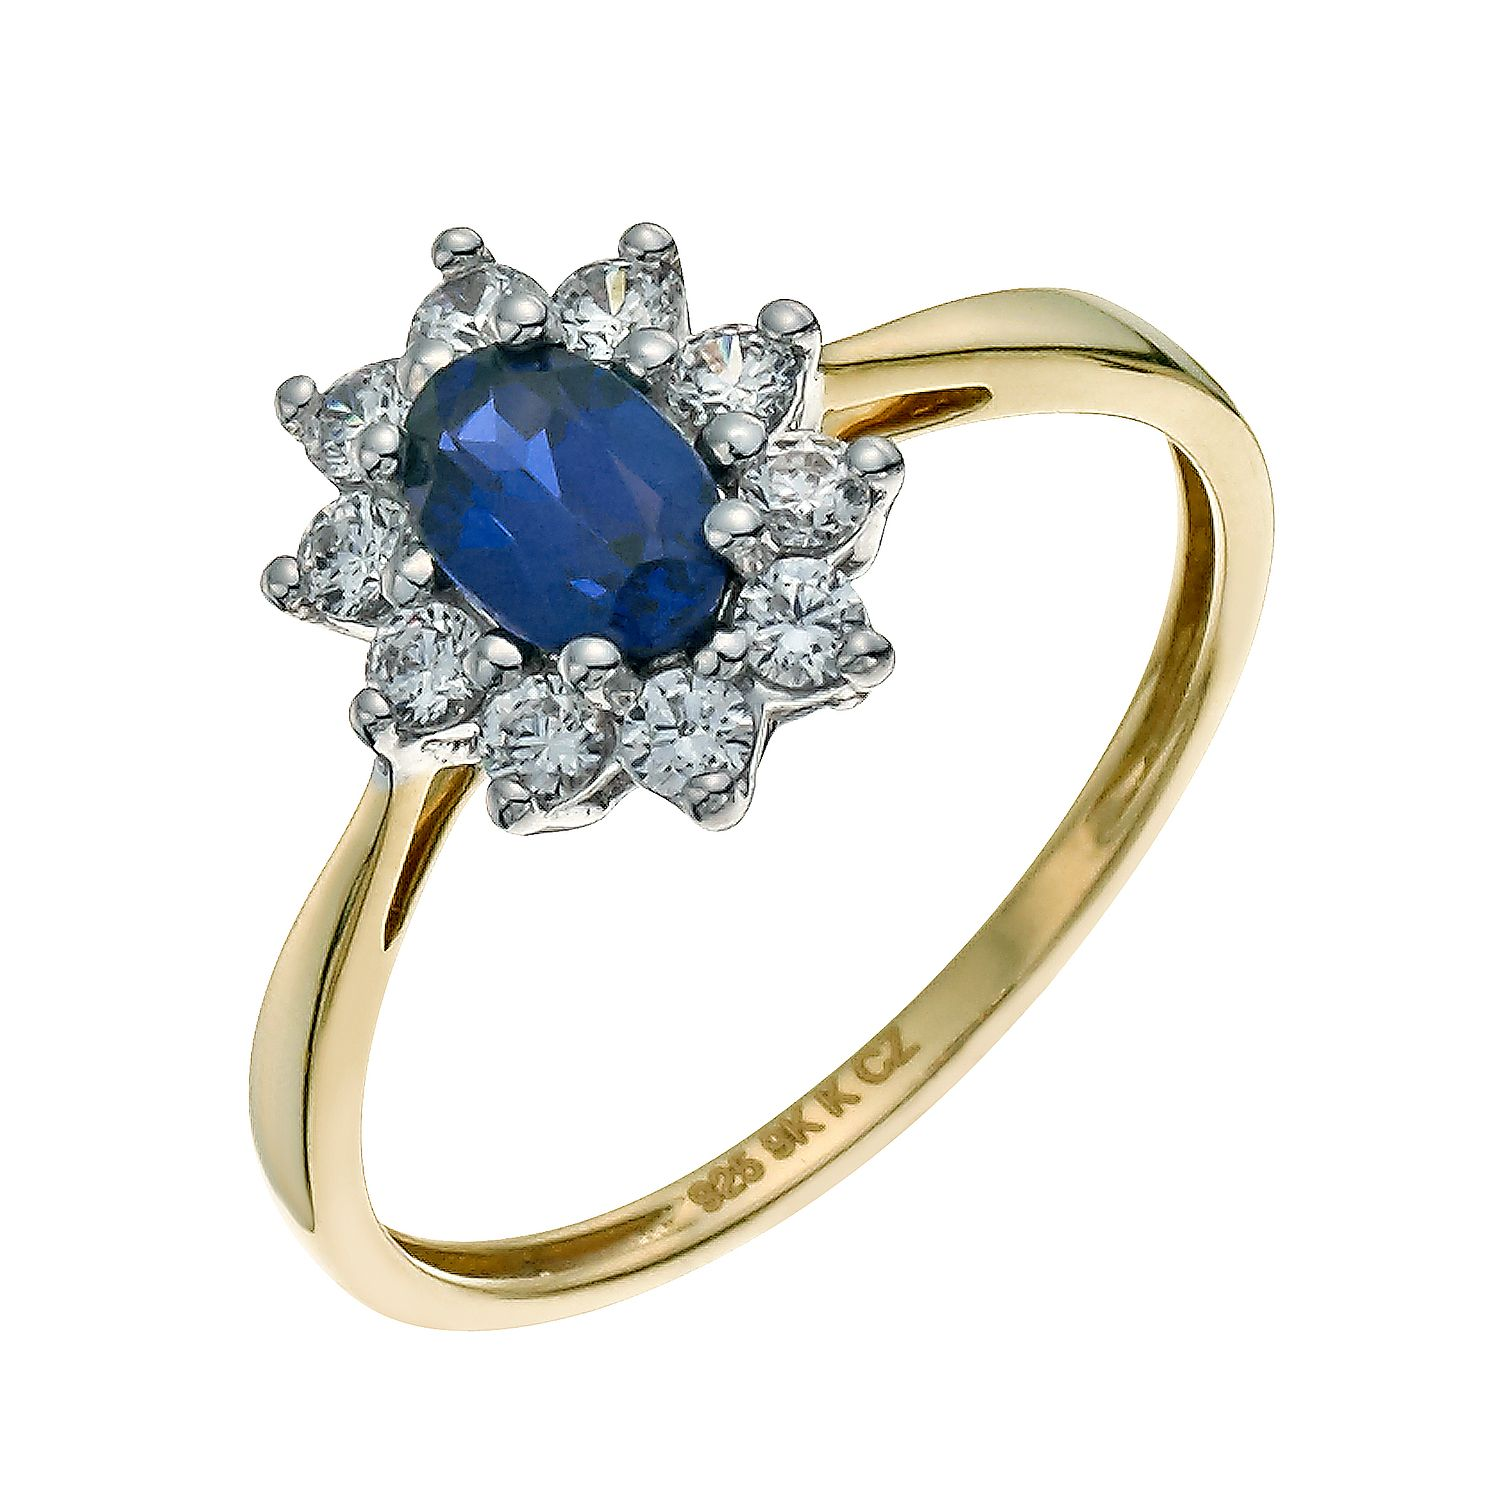 melissa blue mini rings ring jewellery products sapphire rose saffire stone shopify harris gold